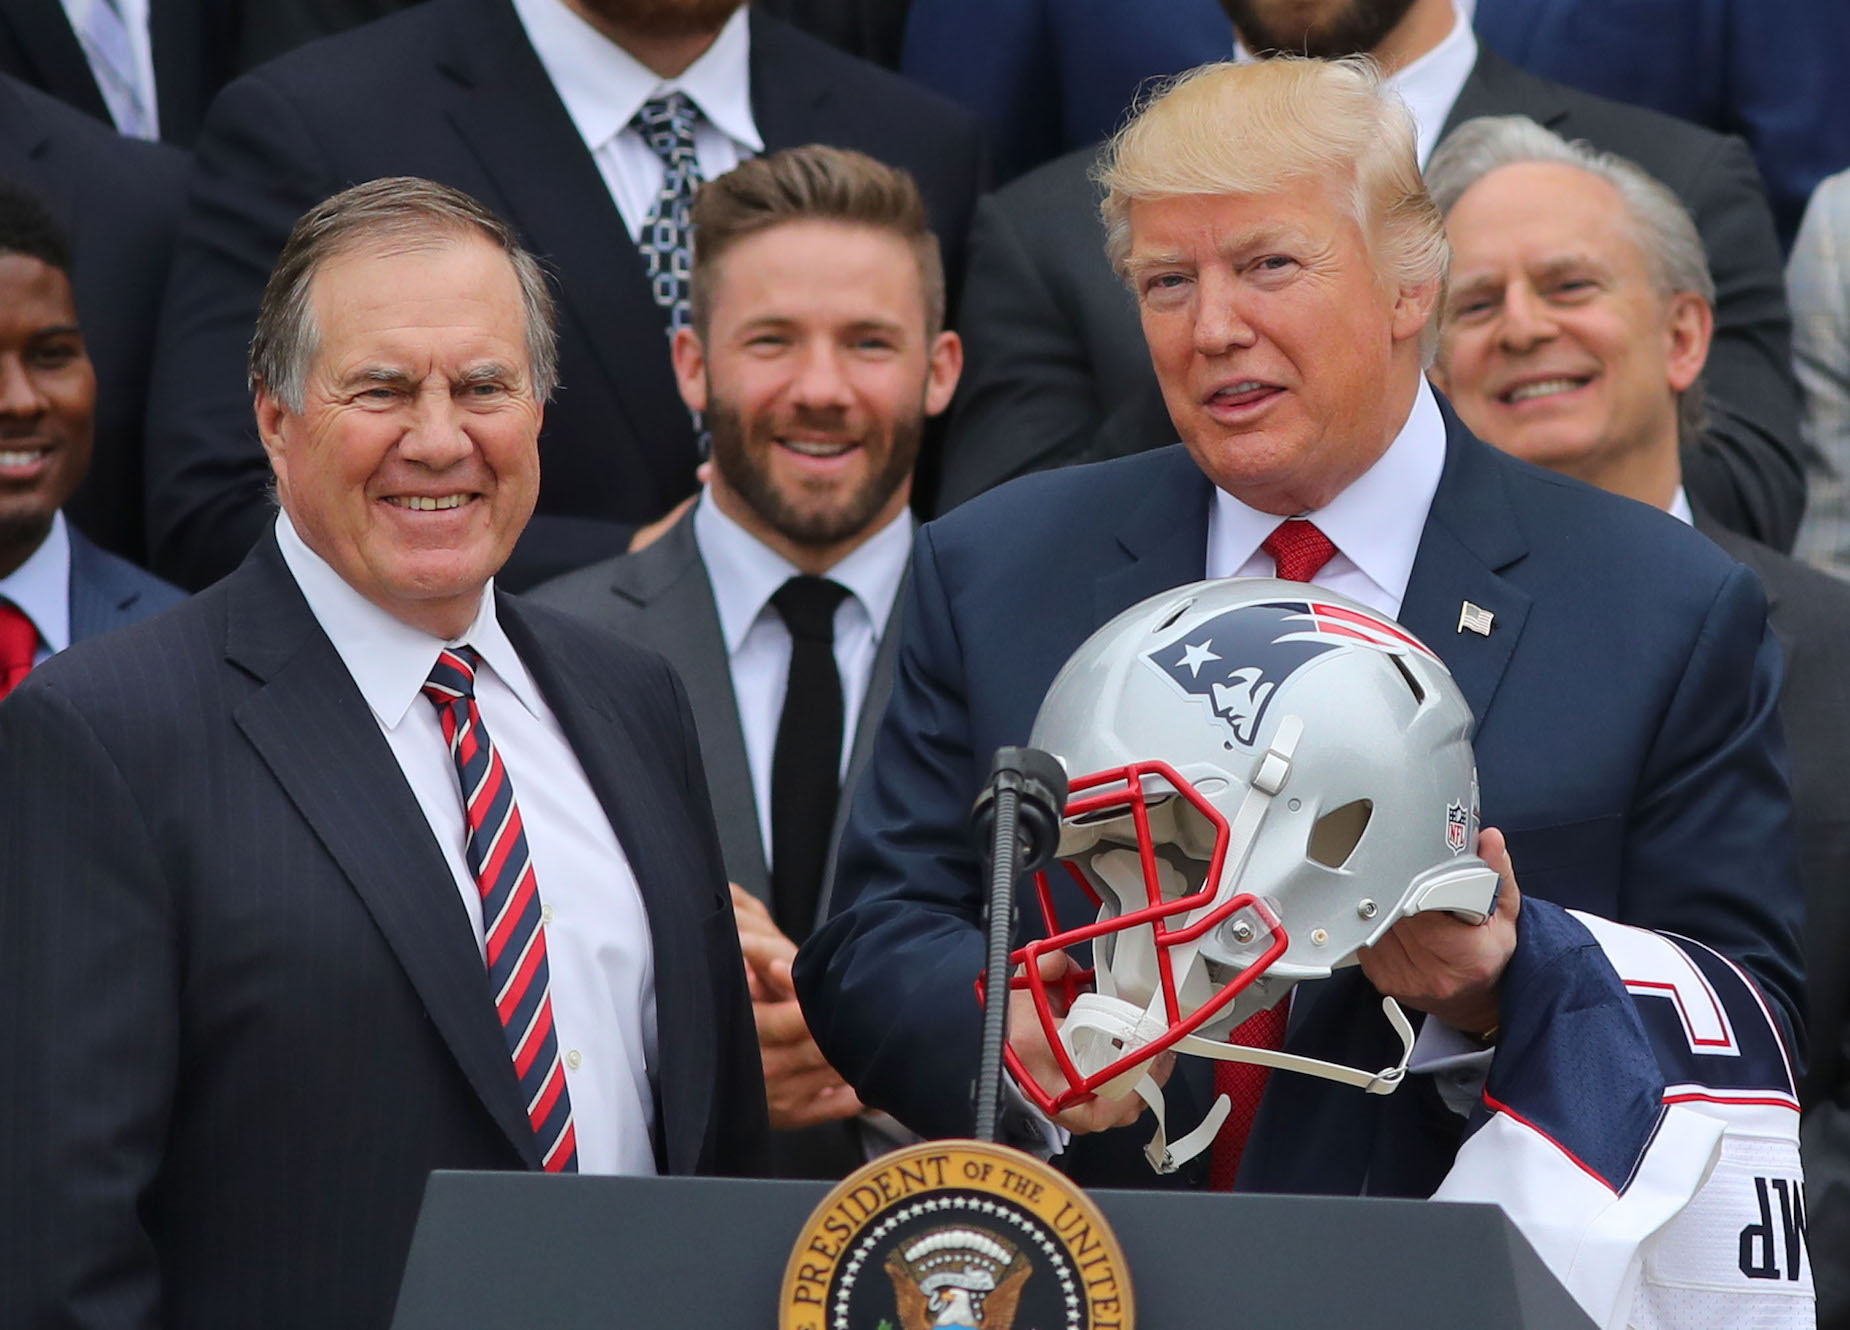 Bill Belichick could find himself facing a PR nightmare, thanks to Donald Trump.